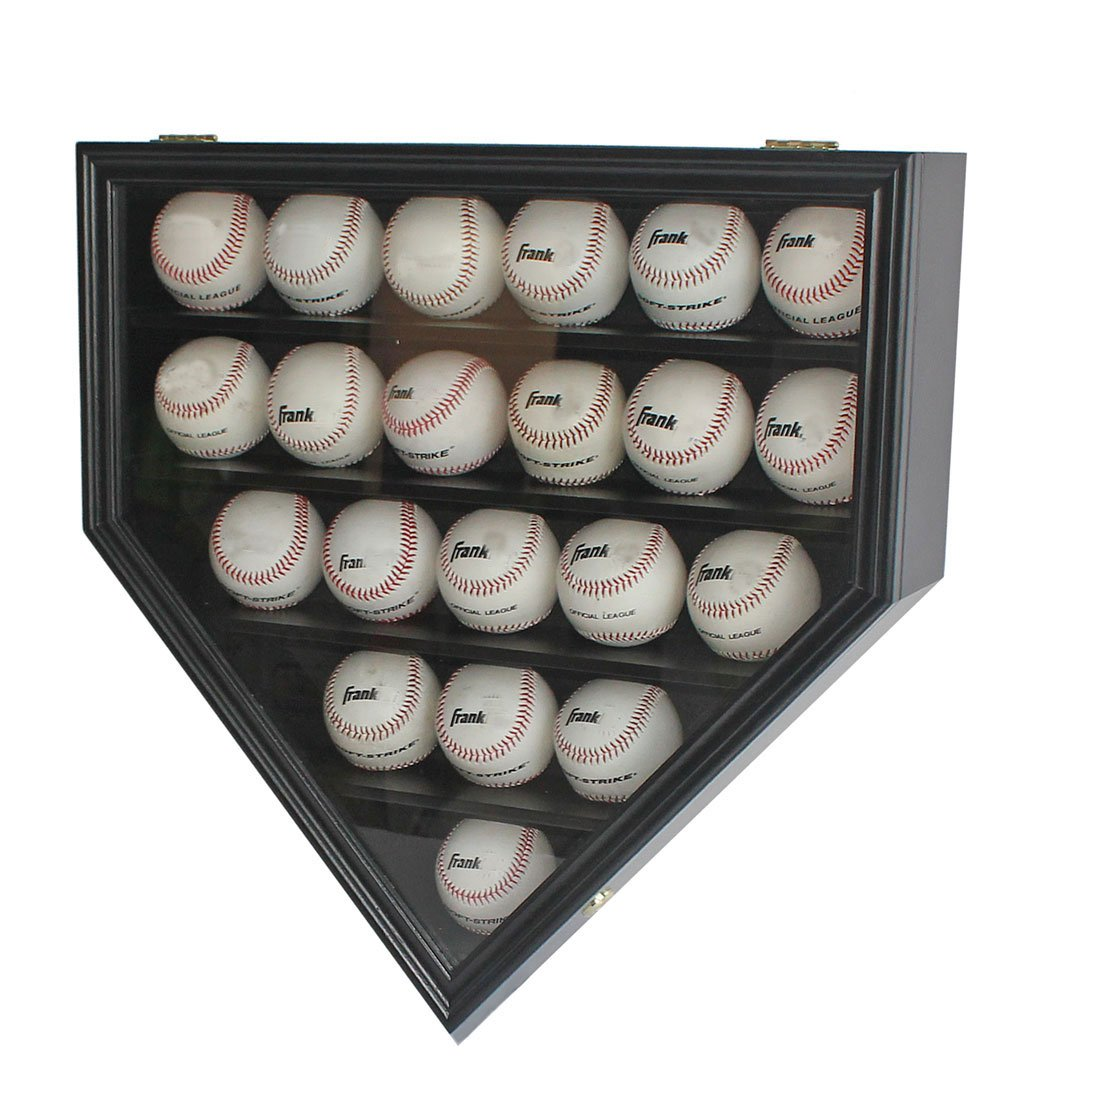 Amazon.com : Solid Wood 21 Baseball Display Case Cabinet Holder, W/UV  Protection, Lockable (Black) : Sports Related Display Cases : Sports U0026  Outdoors